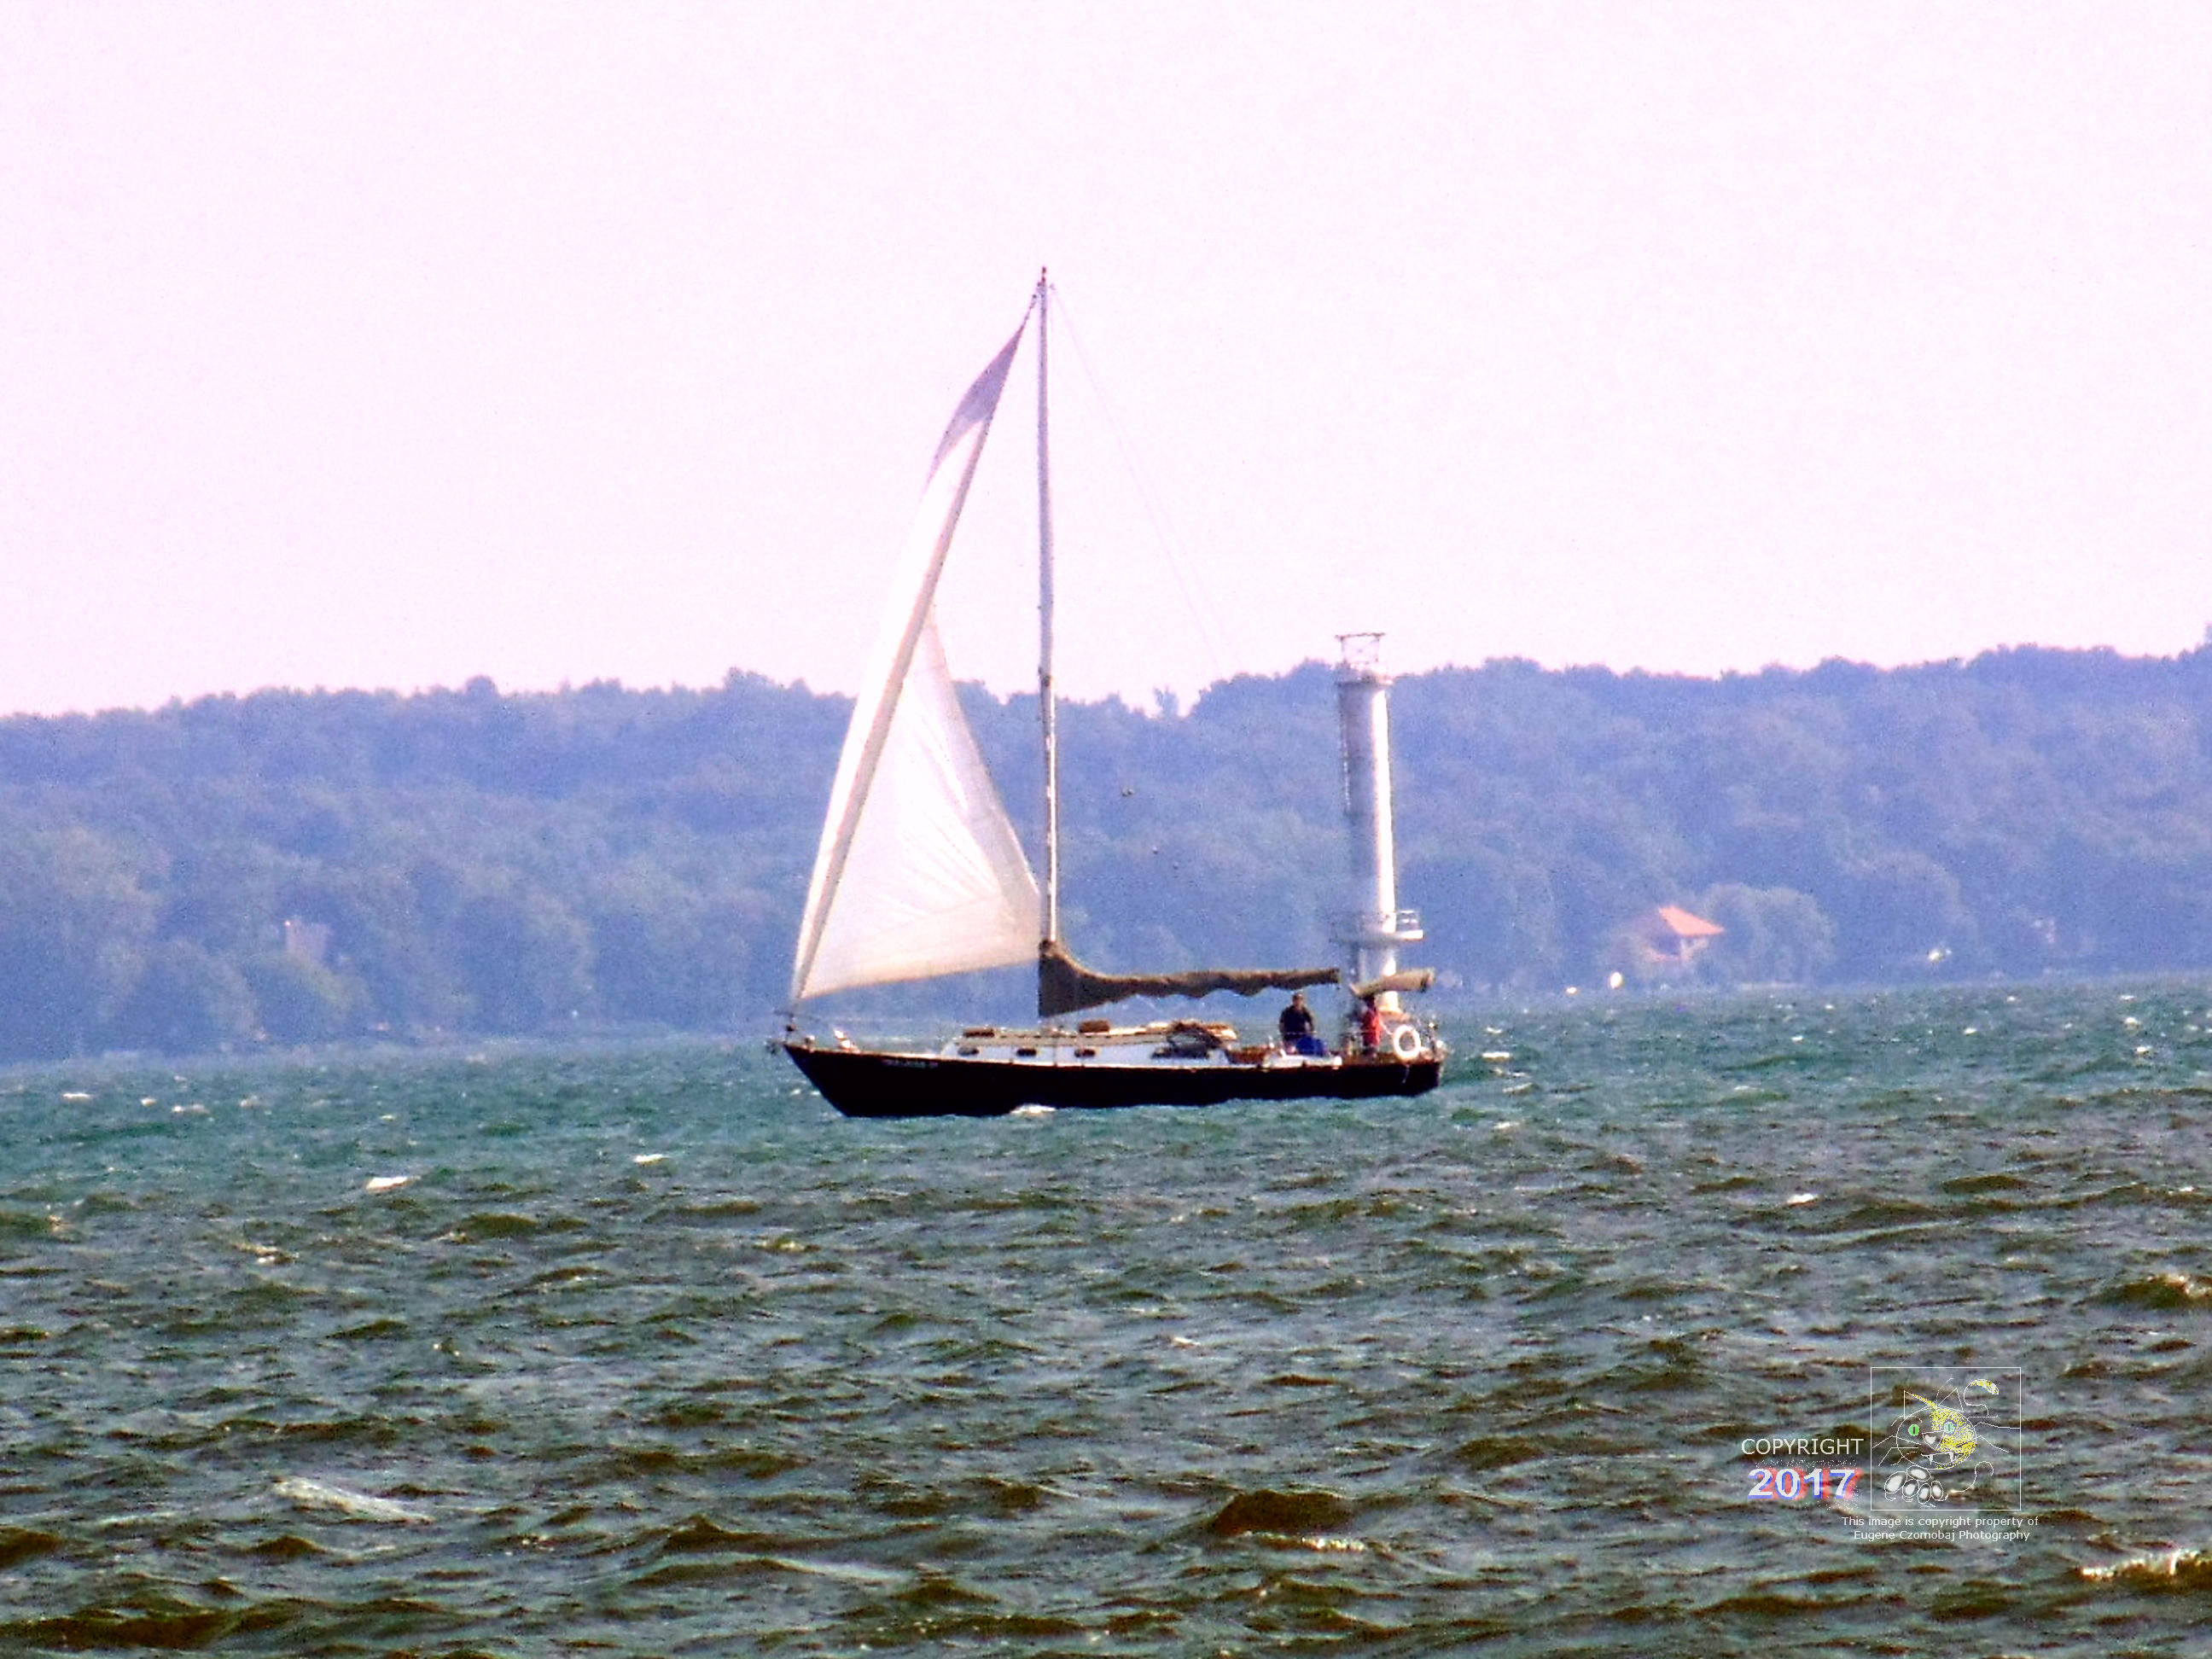 Two man crew prepare to unfurl second main sail of small sailing craft on Lac Saint Louis as winds pick up.